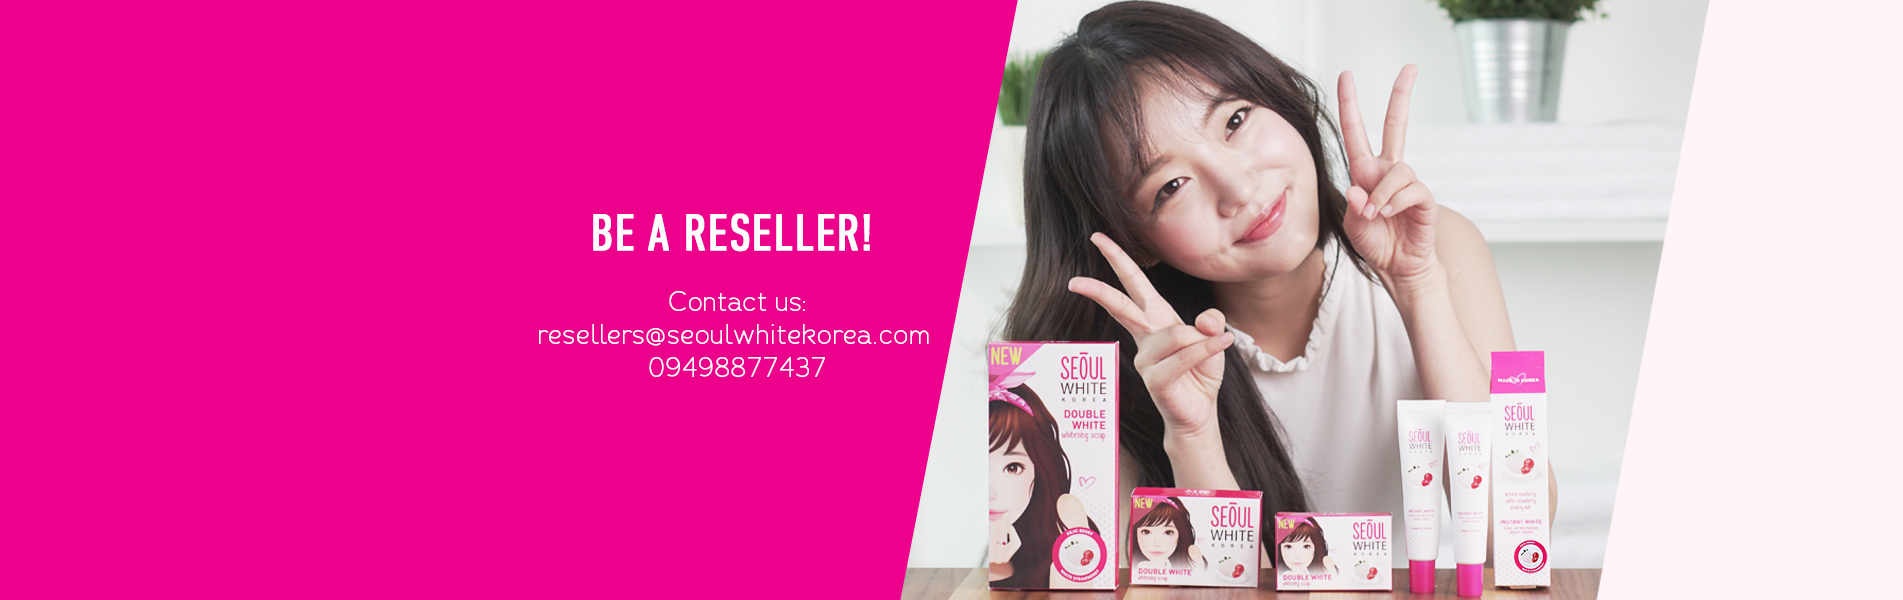 Be-a-Reseller-6